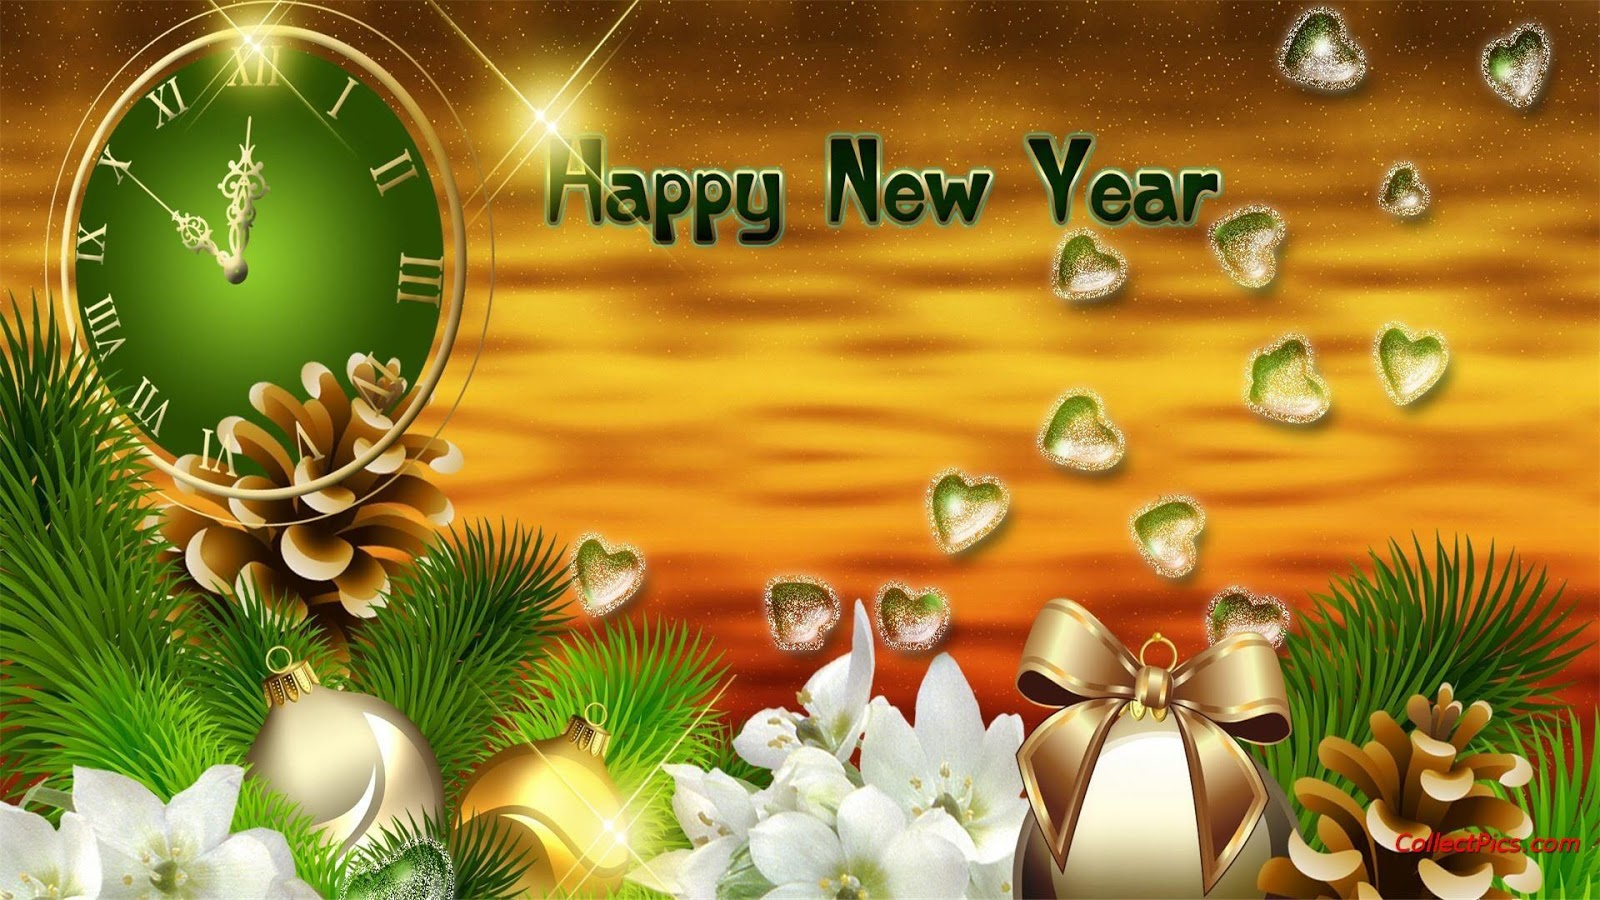 Wallpaper download new year 2015 - Happy New Year 2016 Wallpaper Hd